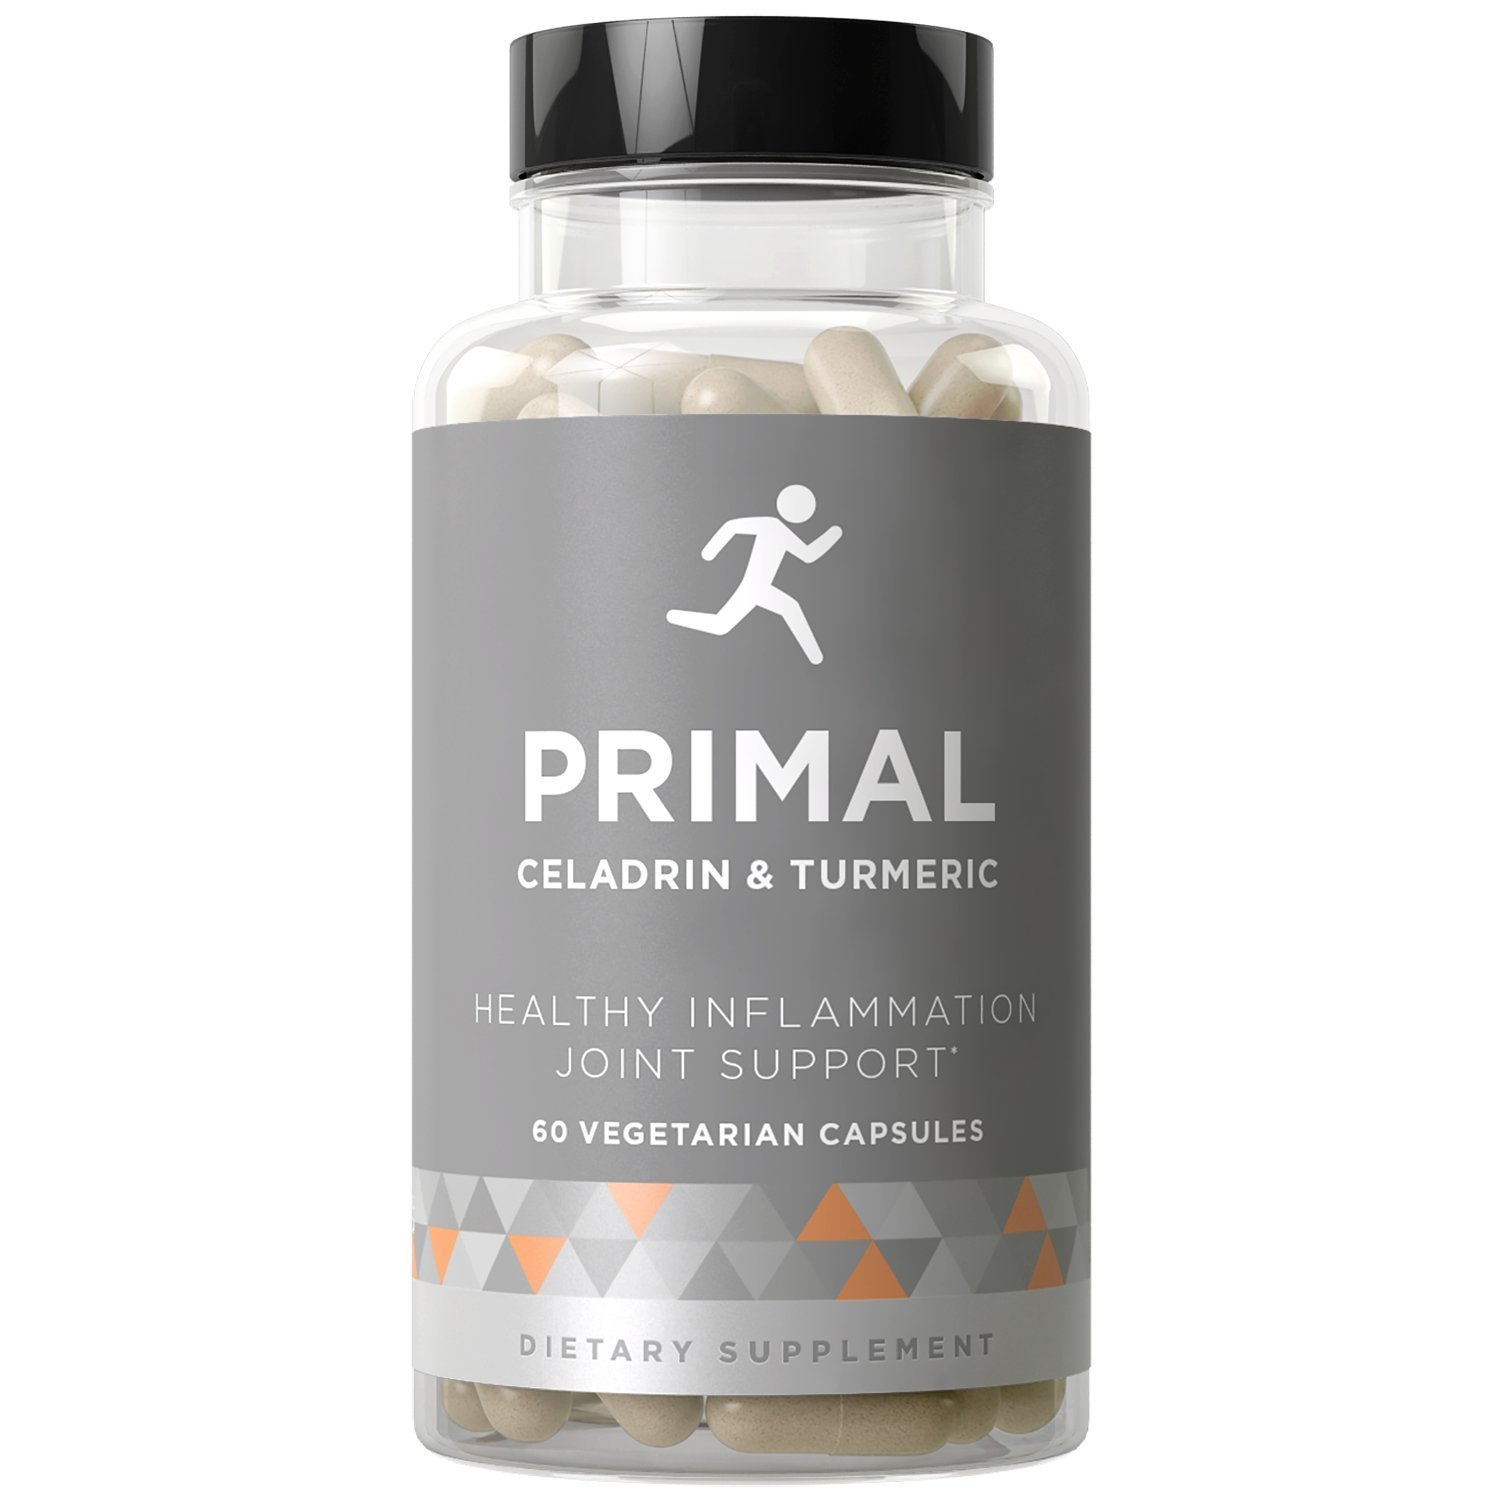 PRIMAL Joint Support & Healthy Inflammation - Fast-acting Potency, Strong Flexibility, Lasting Mobility, Inflammation Protection - Celadrin, Turmeric Curcumin, Boswellia - 60 Vegetarian Soft Capsules